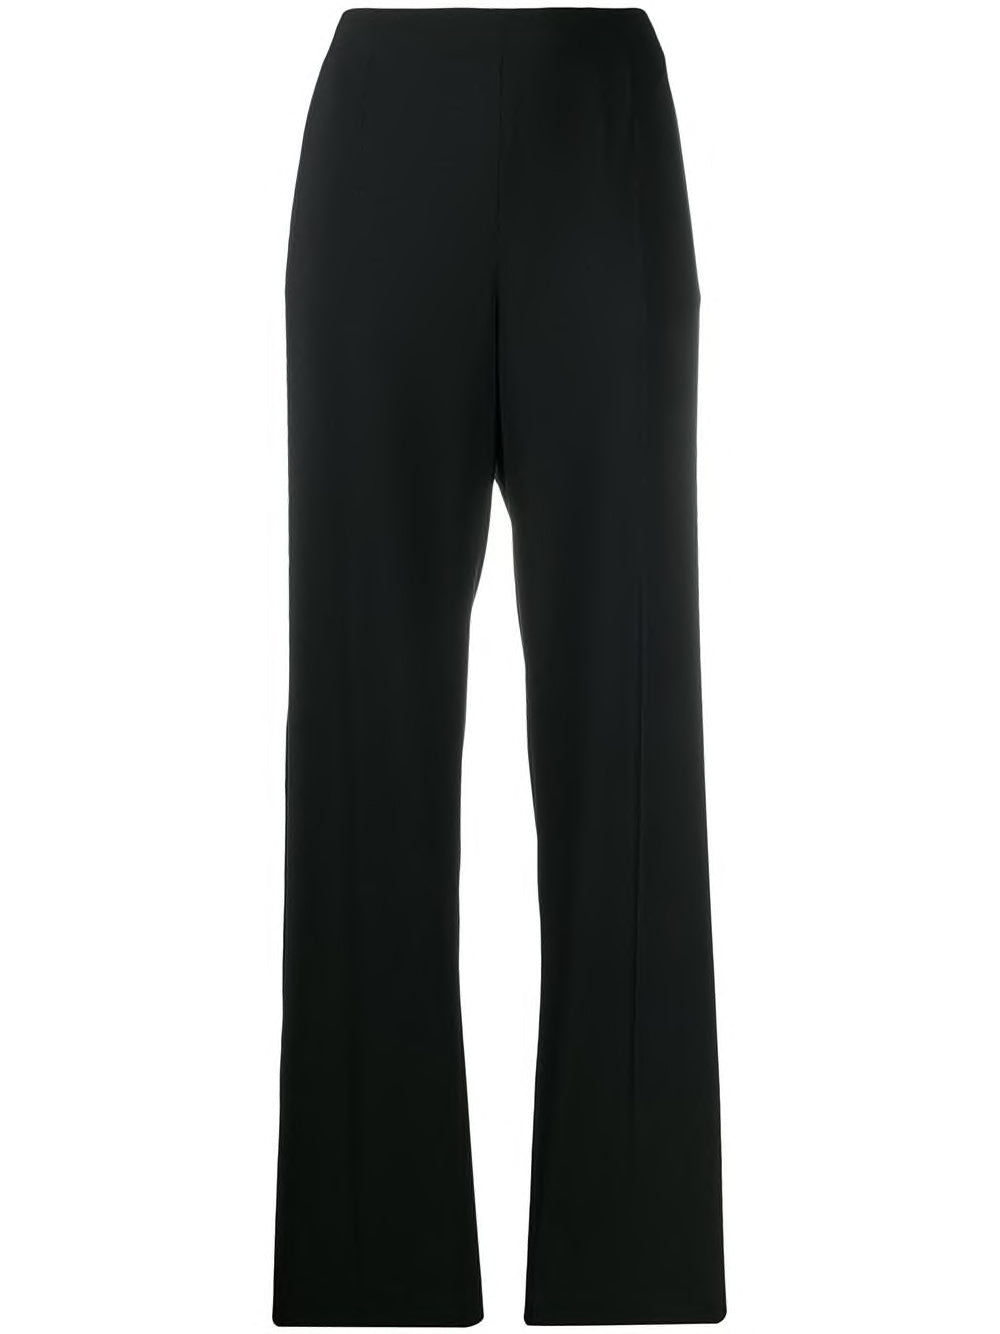 MM6 MAISON MARGIELA - Side Tassel Tailored Trousers